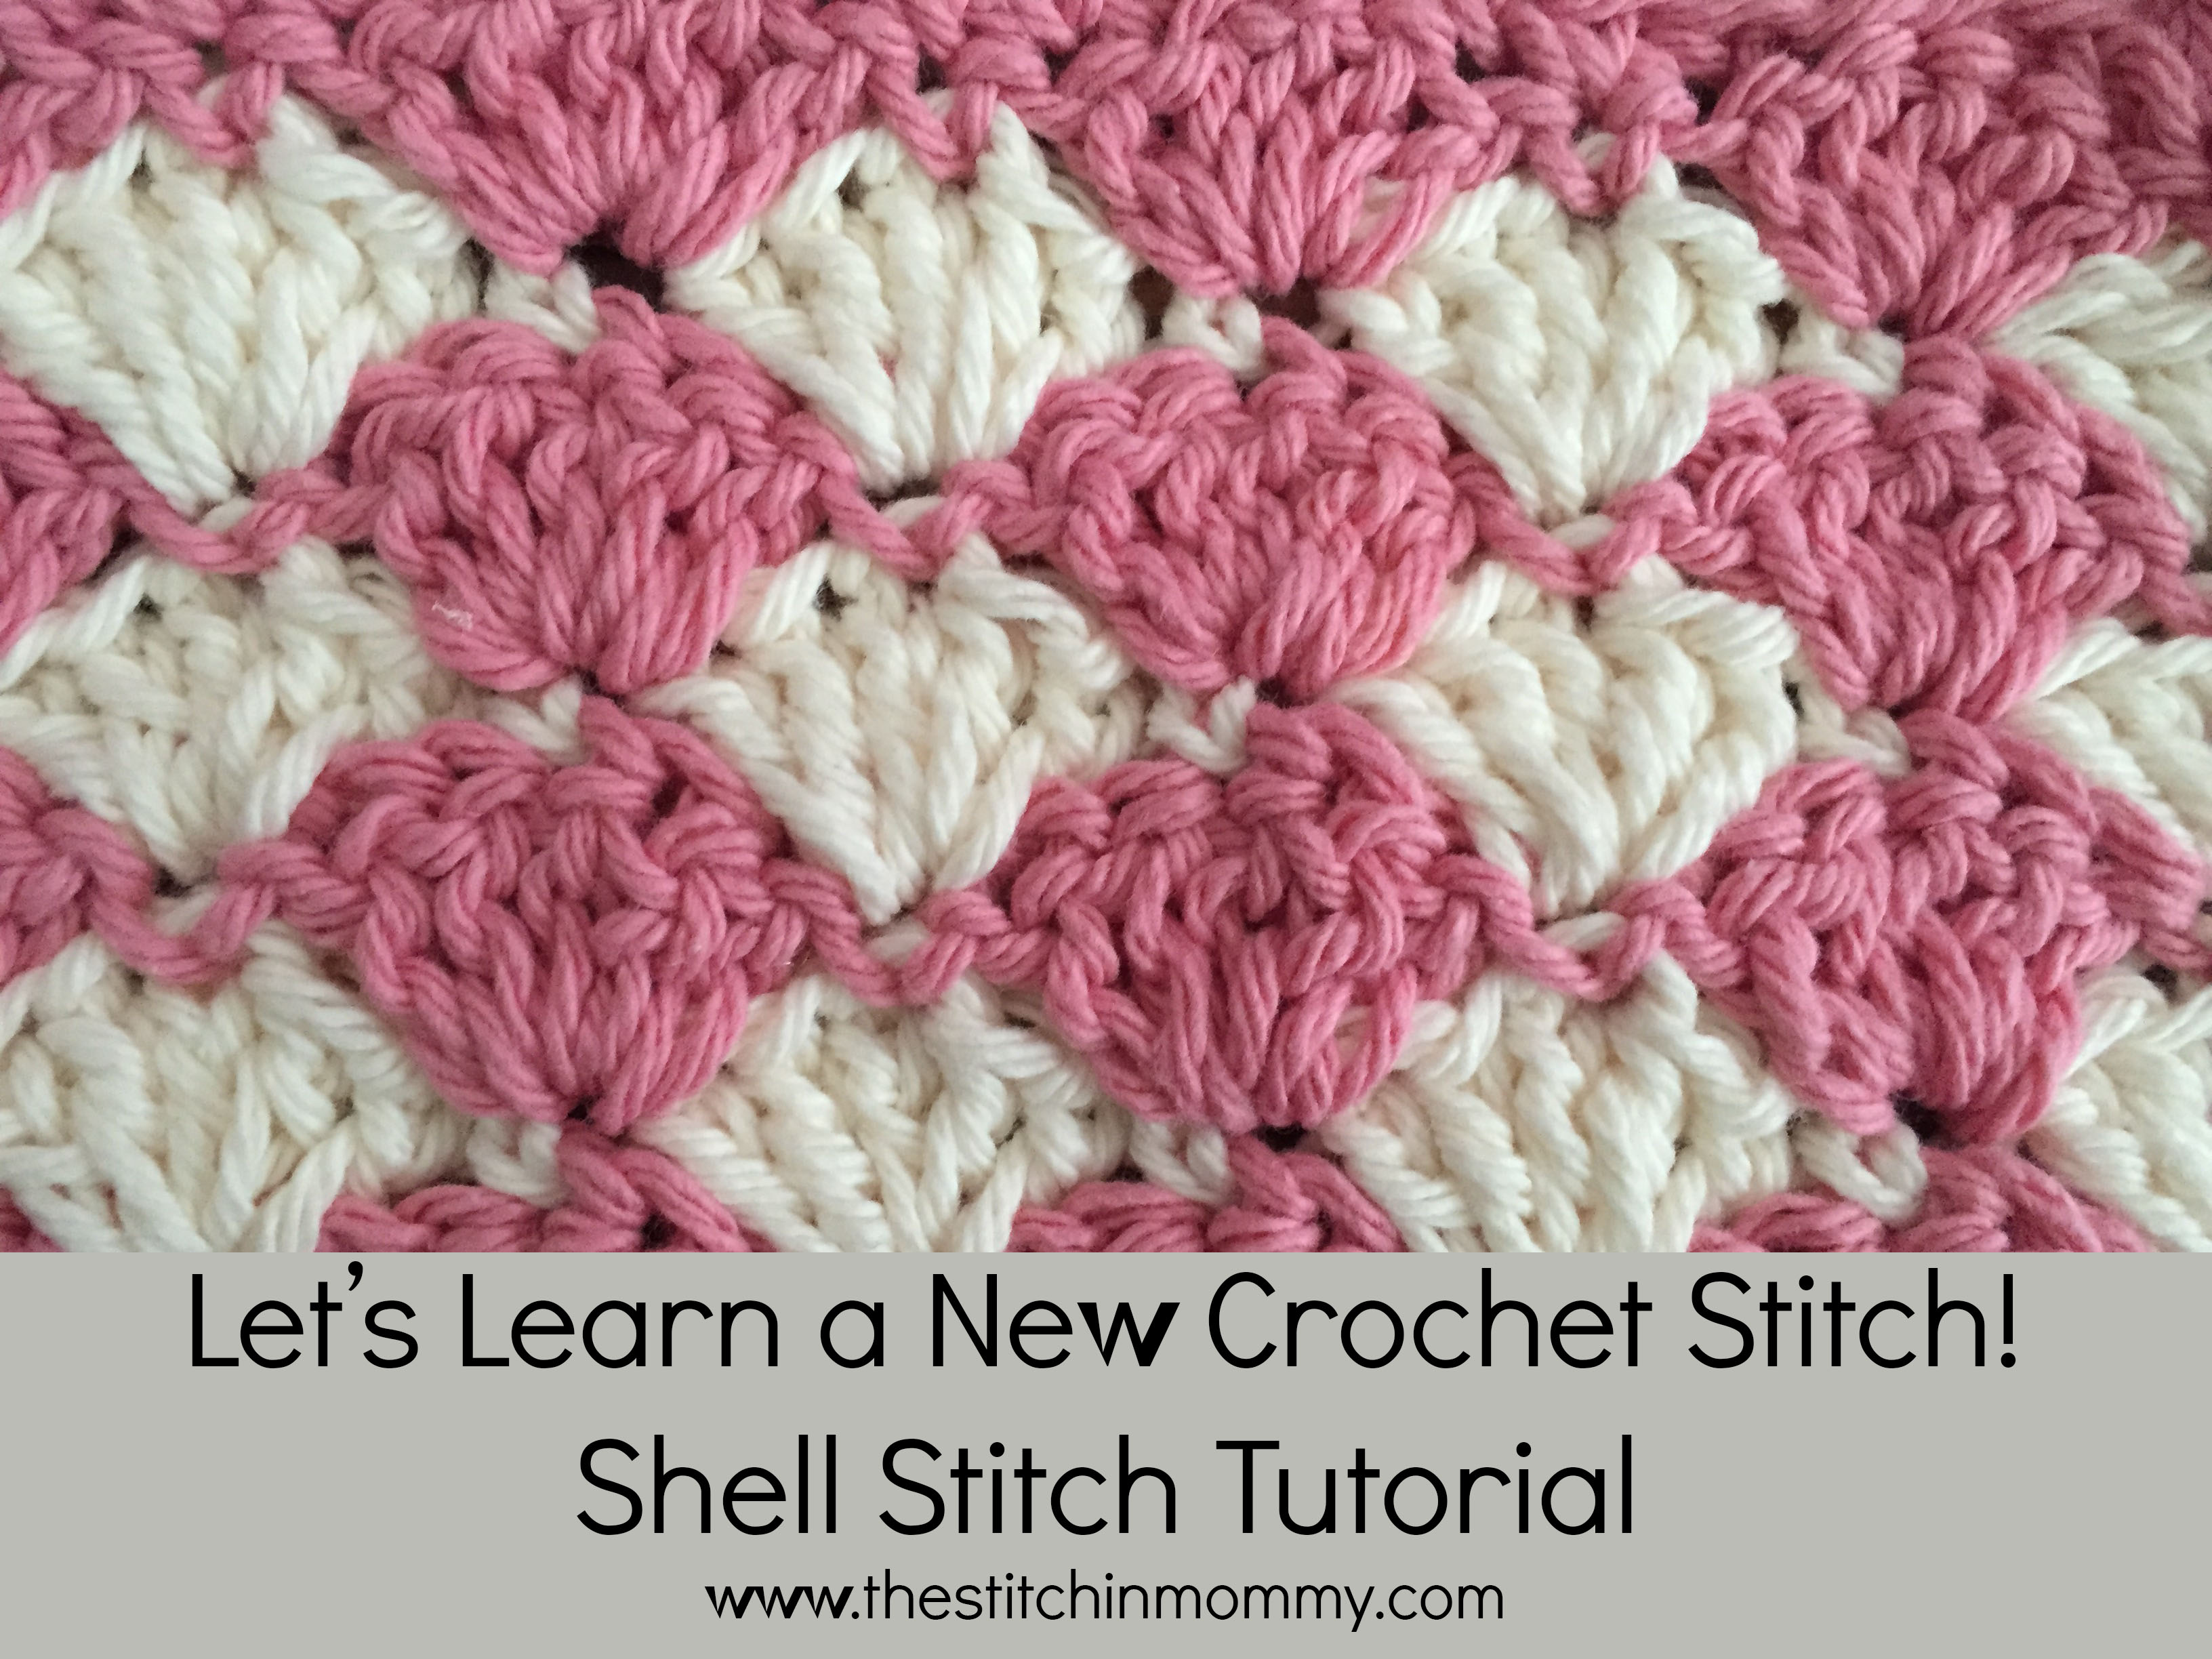 Shell Stitch Tutorial - The Stitchin Mommy